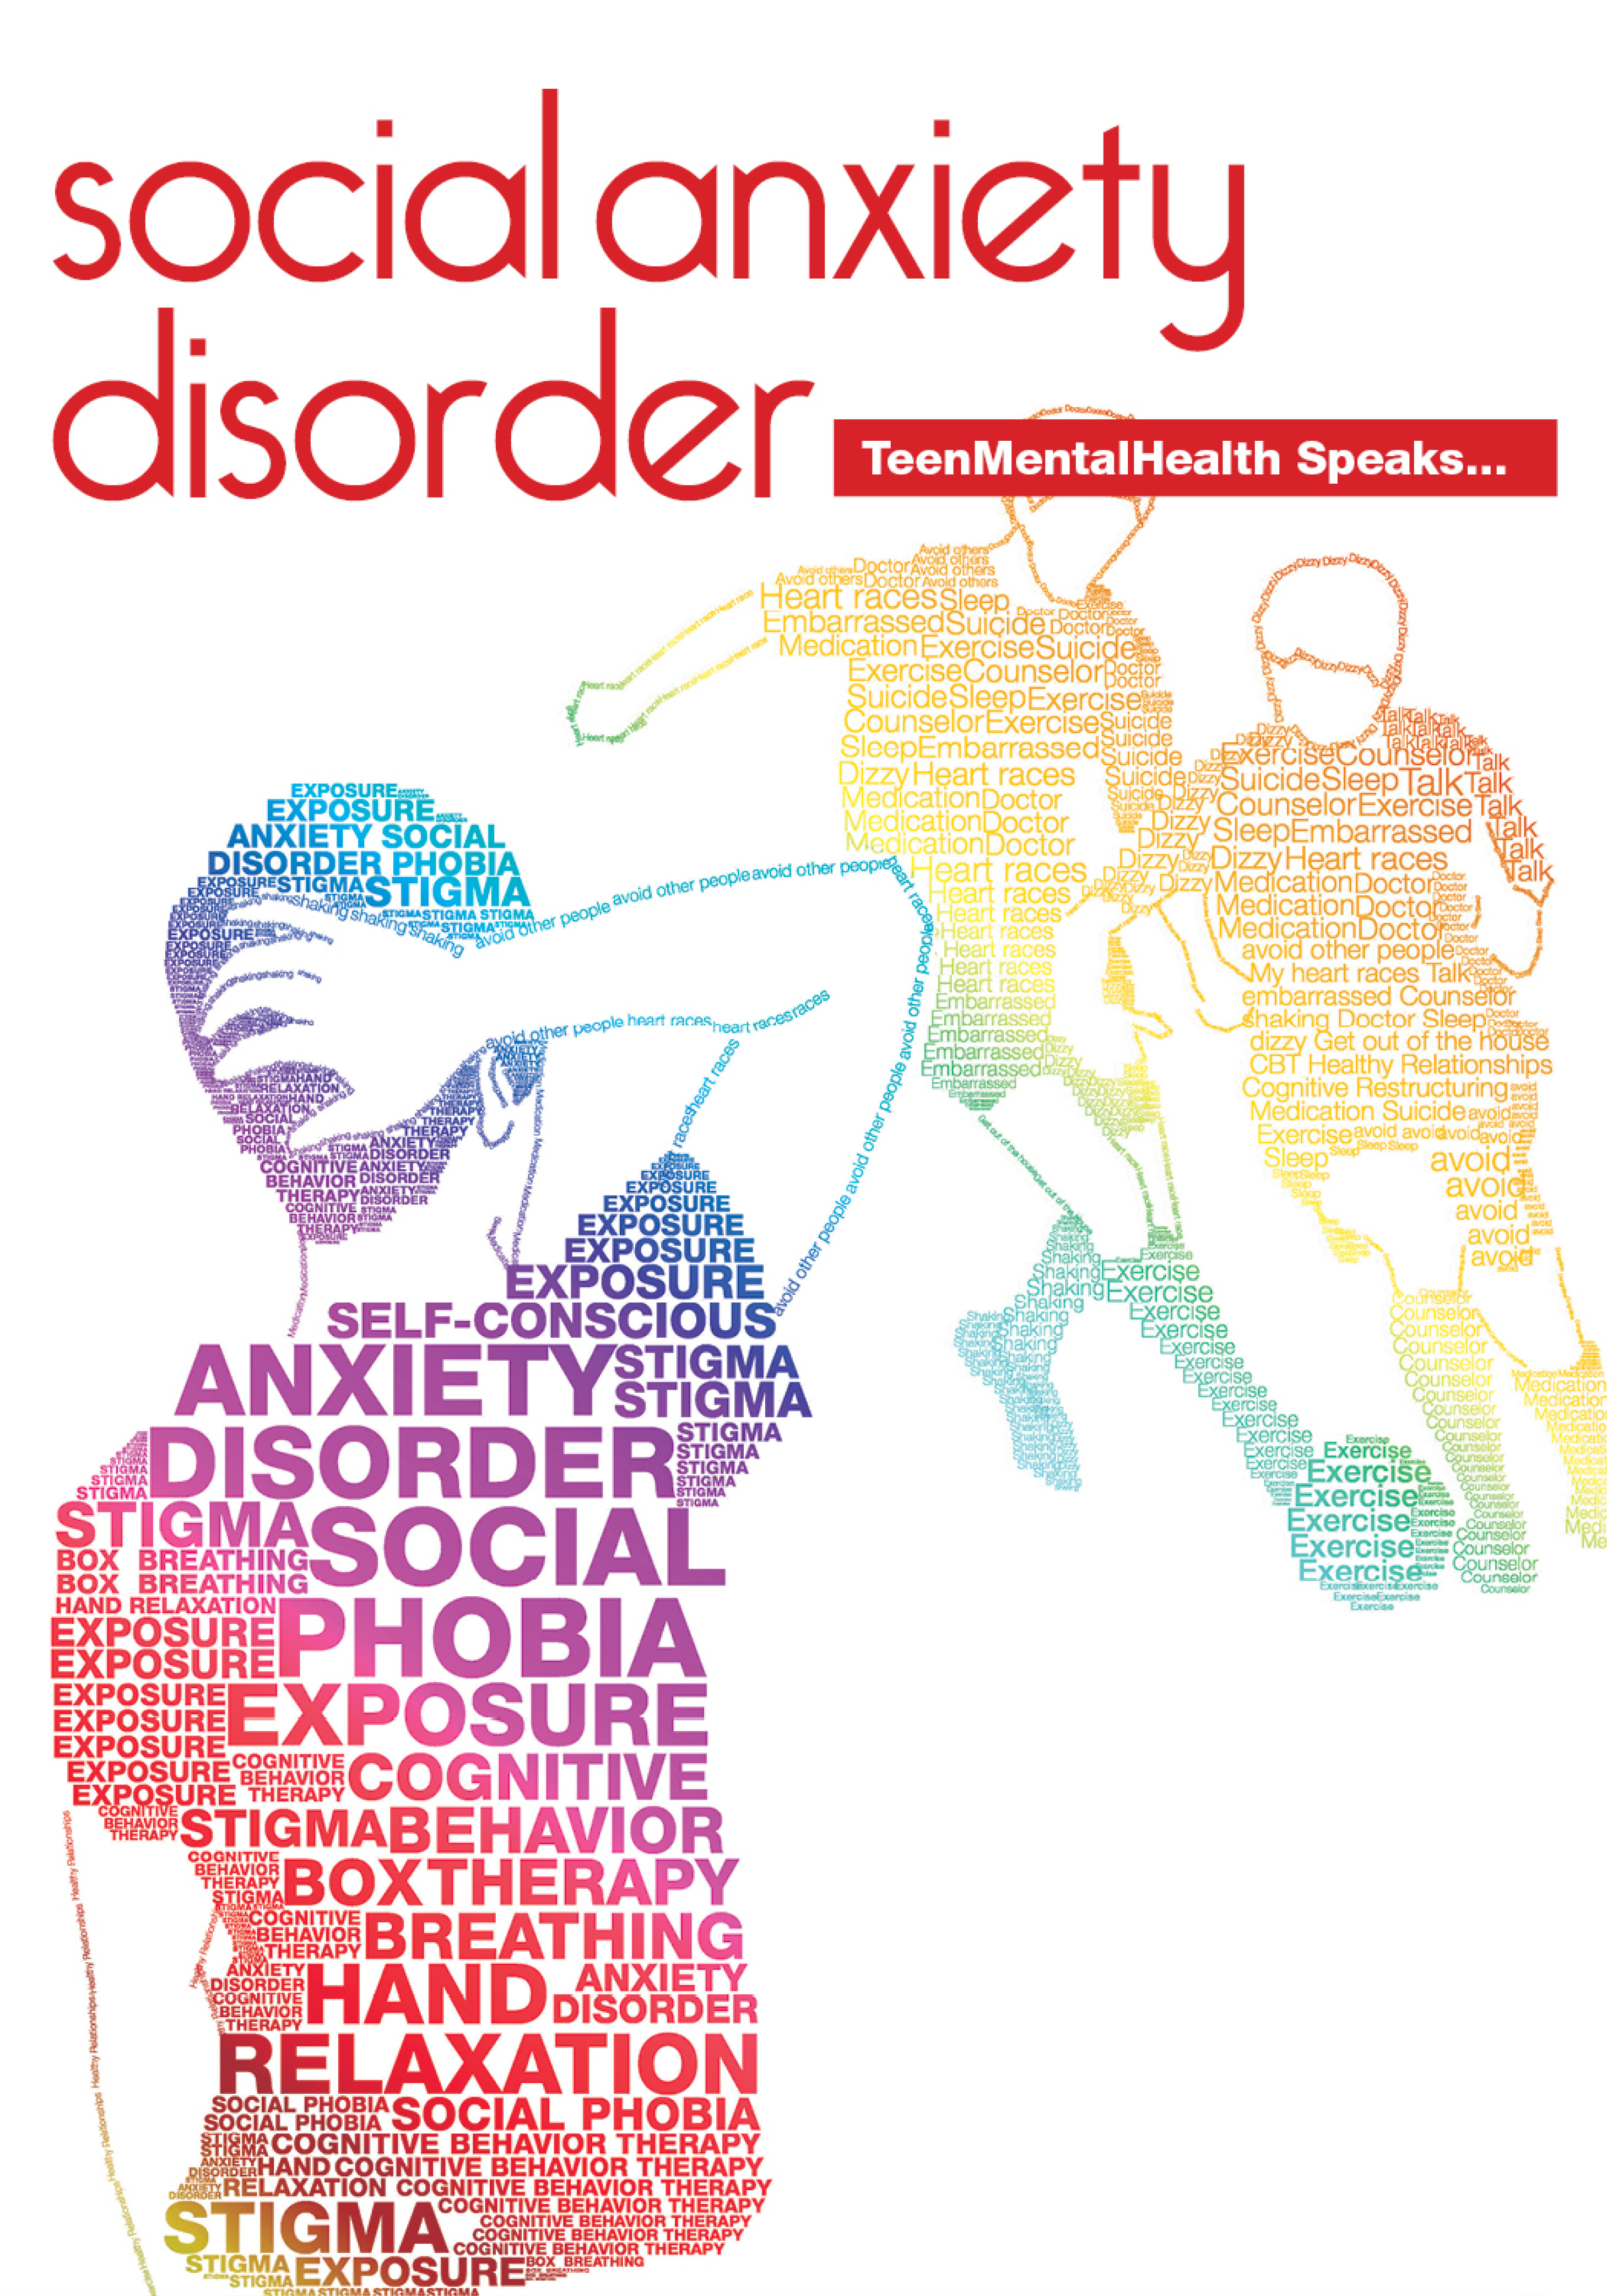 Tmh Speaks Social Anxiety Disorder